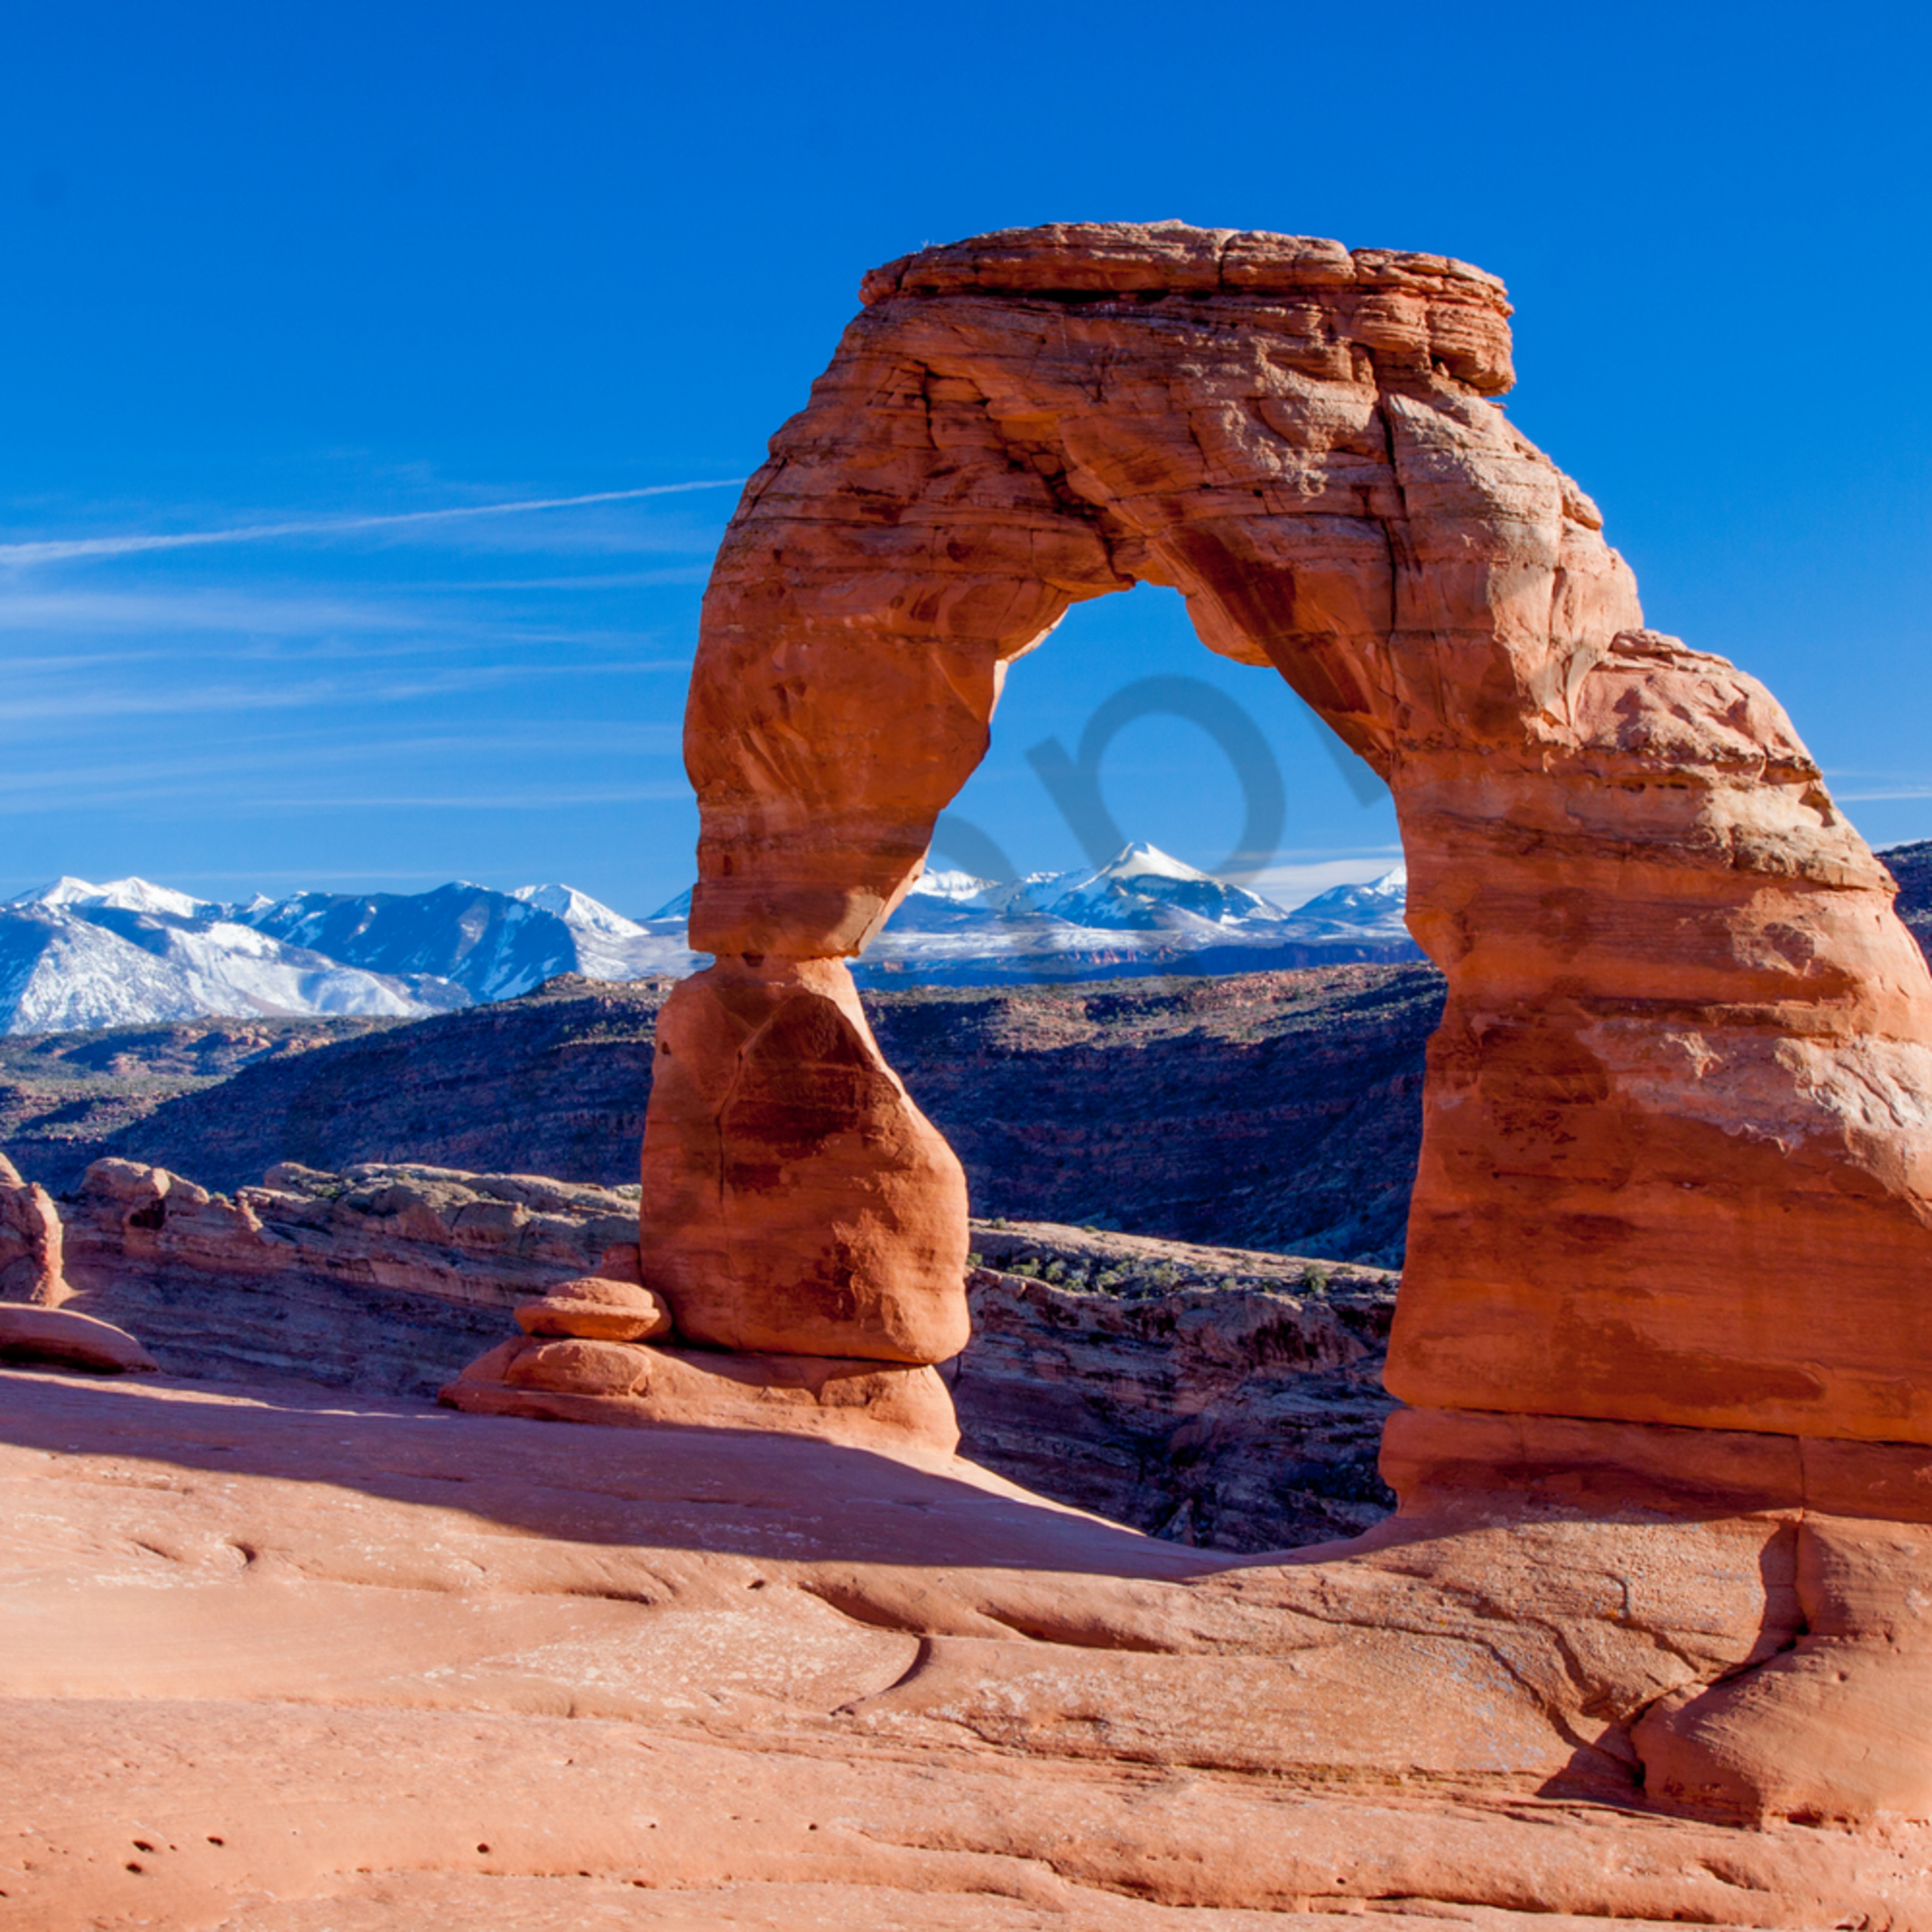 Arches canyonlands 2 2015 34 p5d6vn